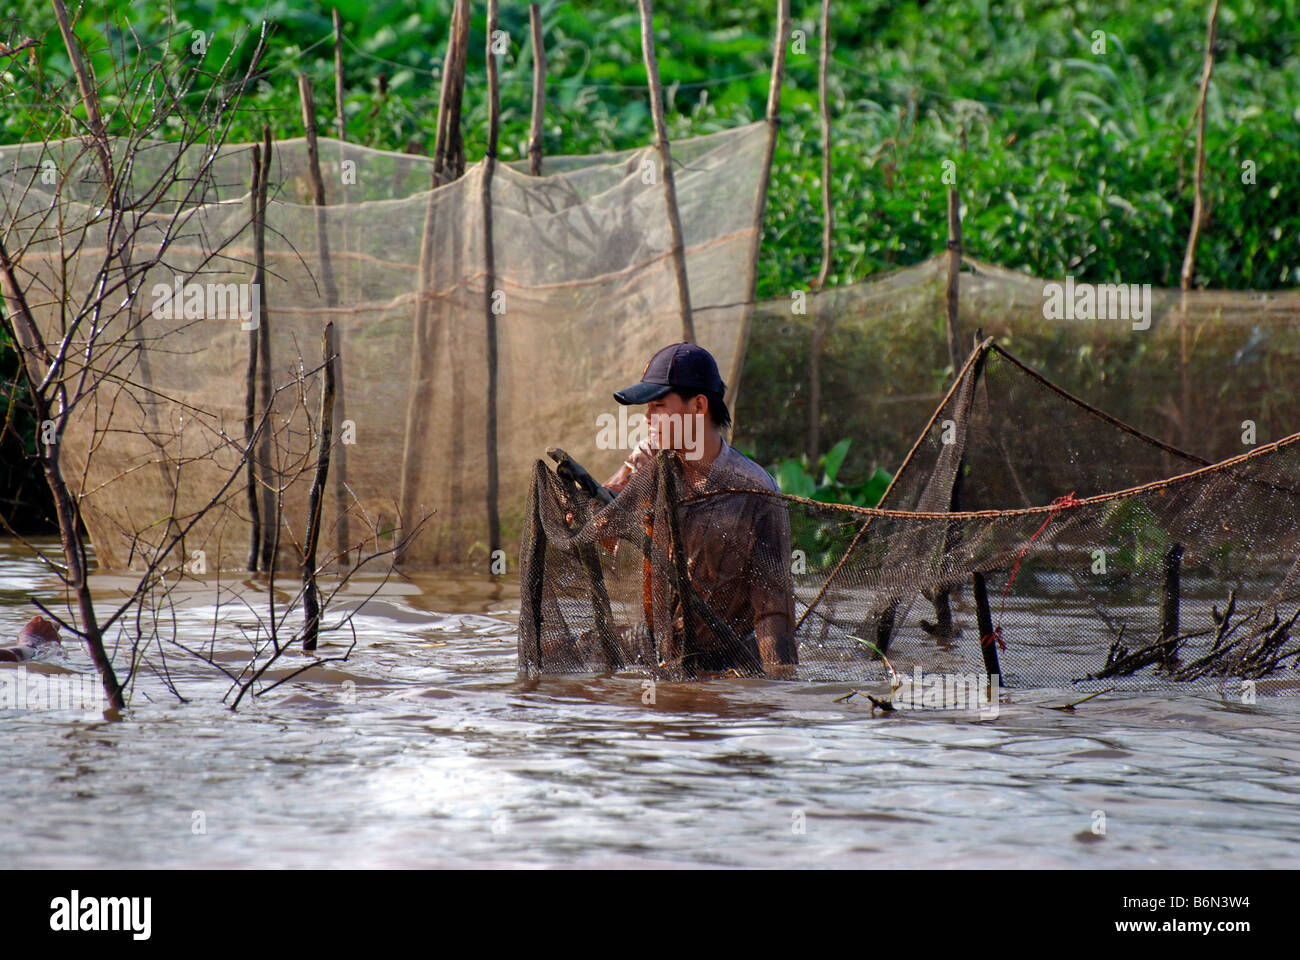 Fisherman with nets and the banks of Tien Giang River, Mekong Delta, Vietnam - Stock Image